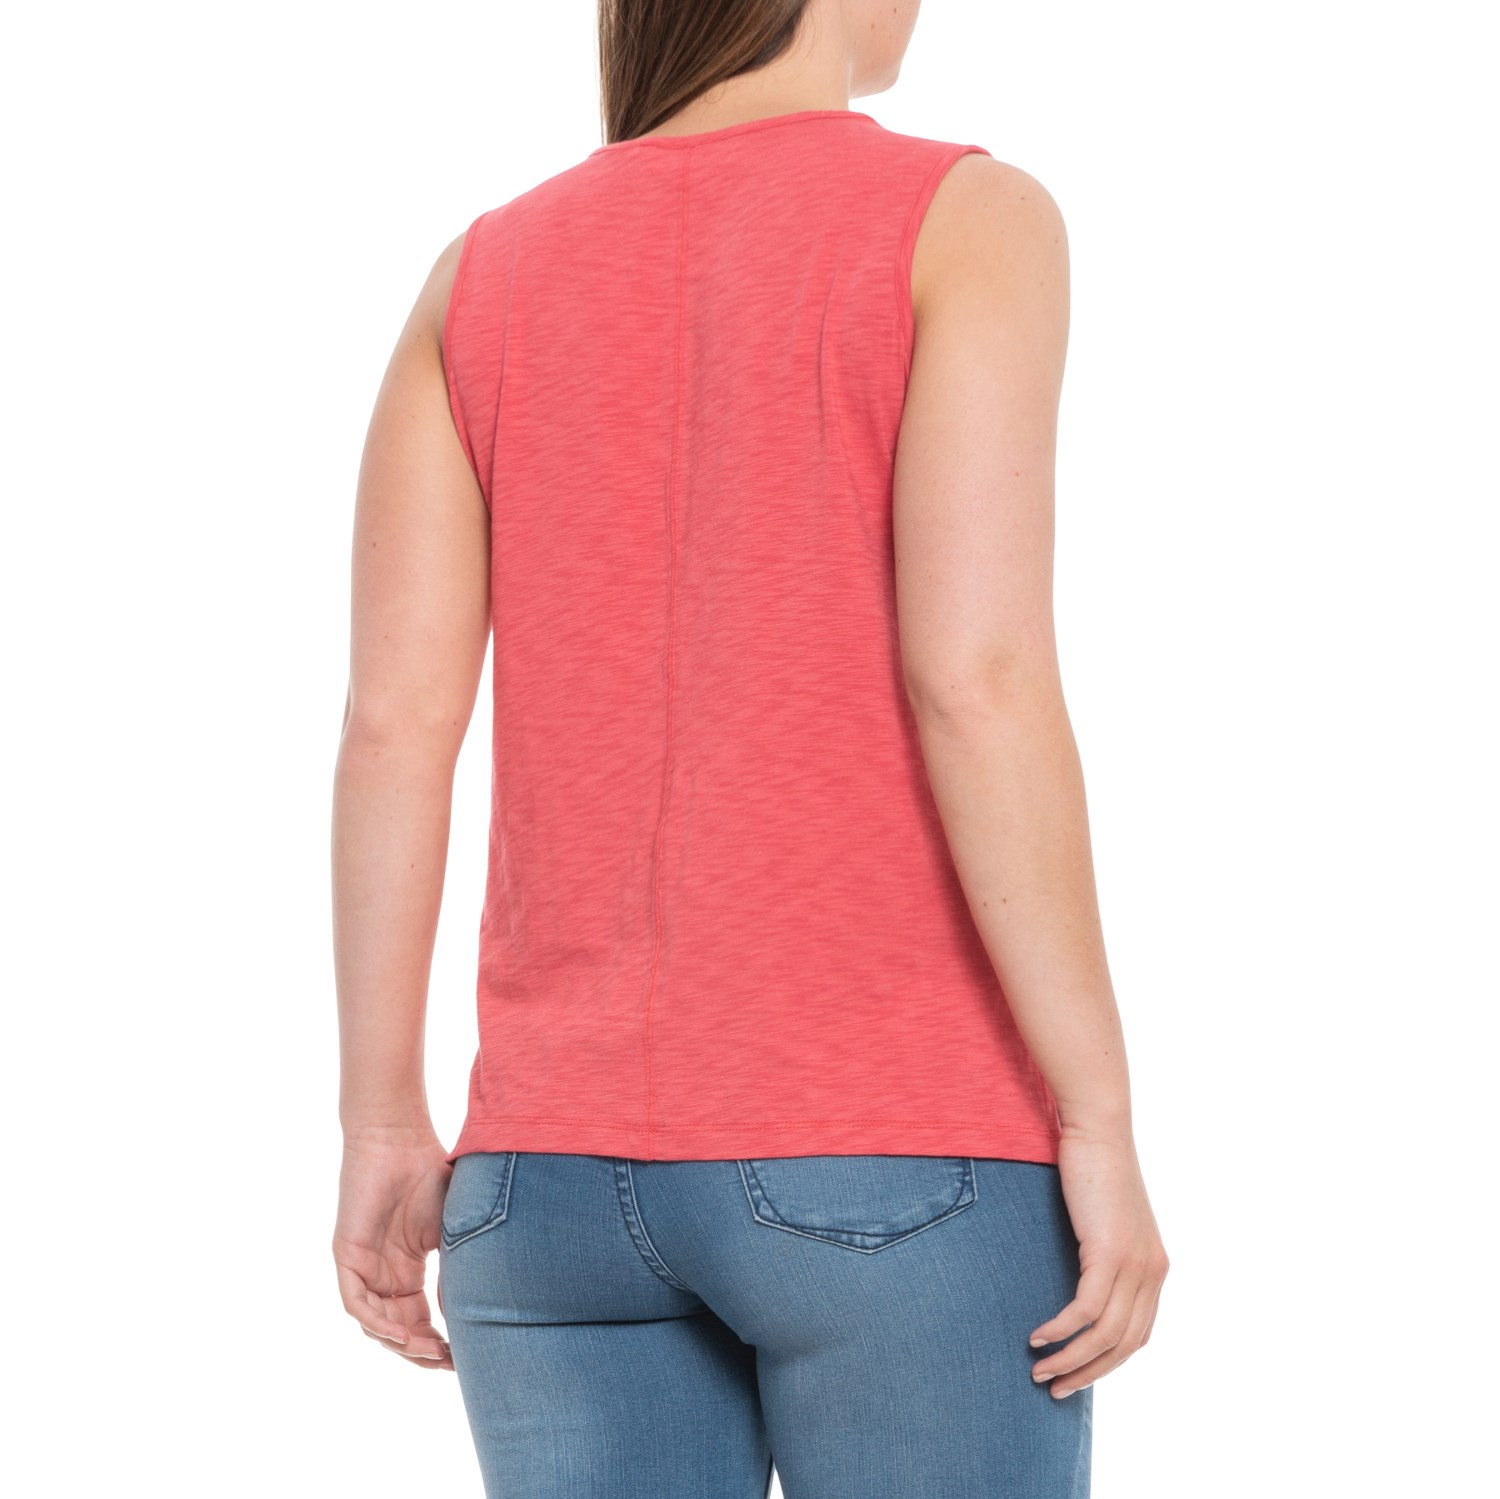 39e5847539d Sigrid Olsen Nantucket Scoop Neck Slub Tank Top (For Women) - Save 28%